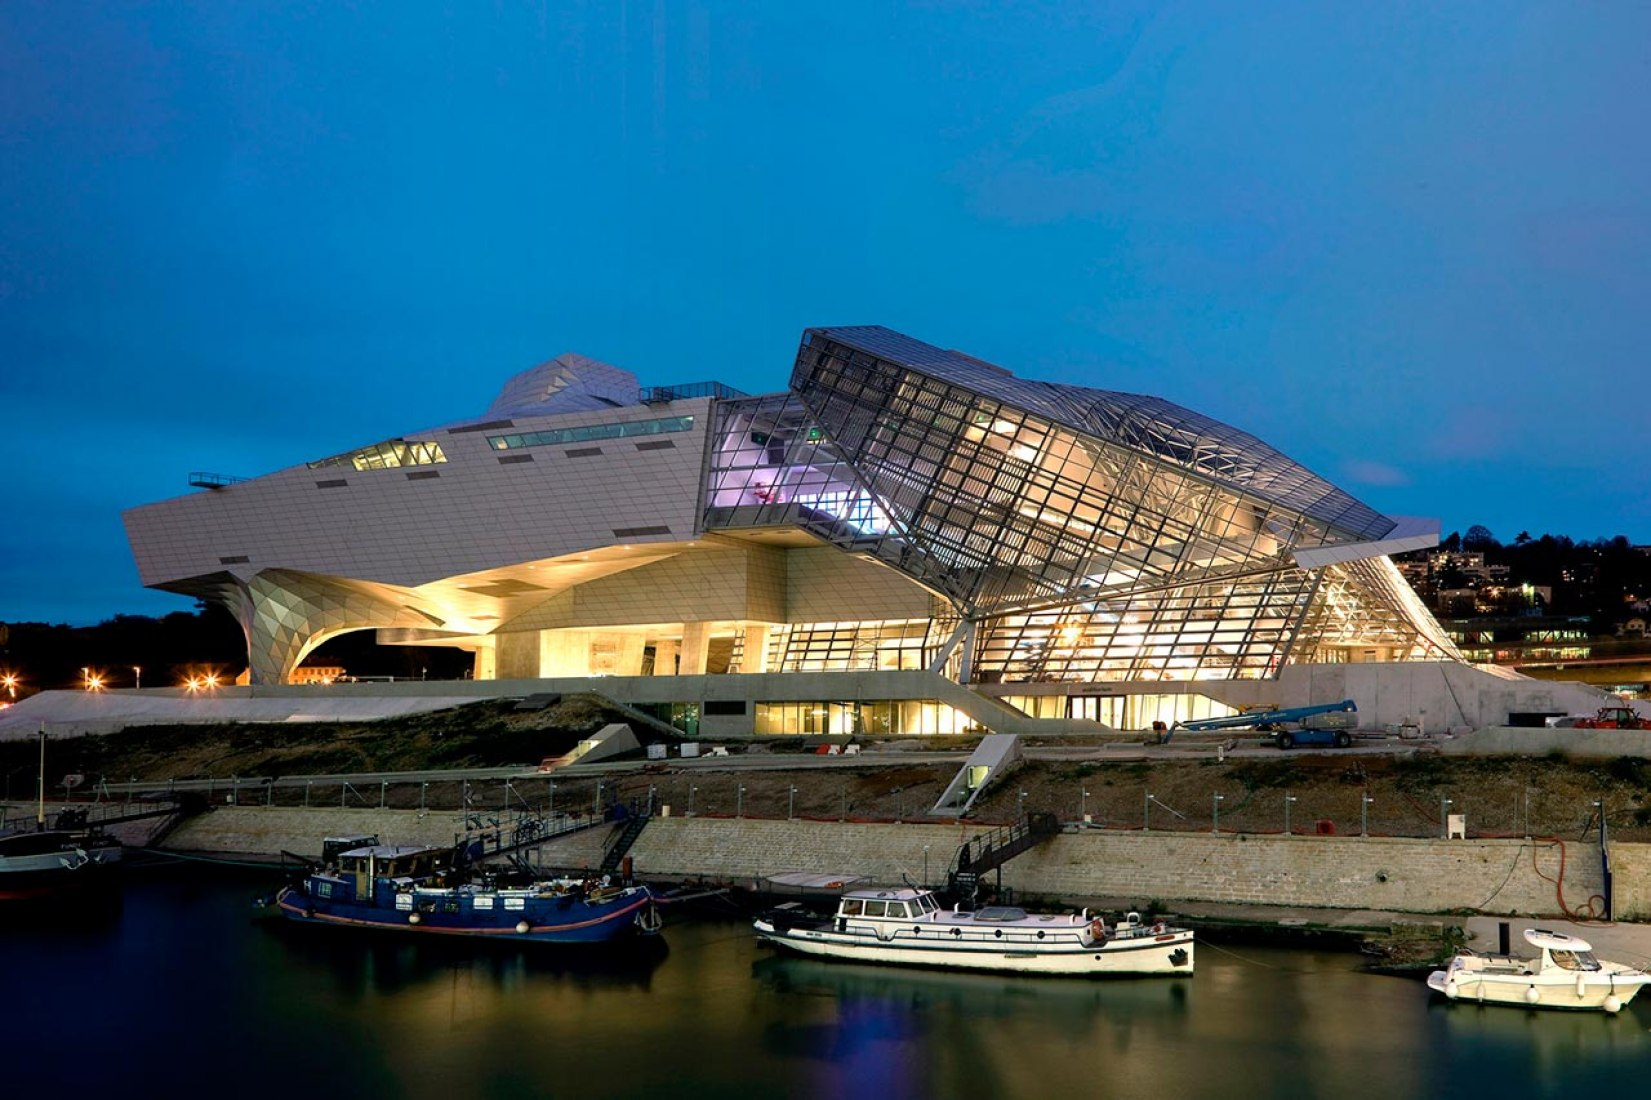 The new Musée des Confluences, by Coop Himmelb(l)au, at the confluence of the Rhône and Saône Rivers in Lyon, France.